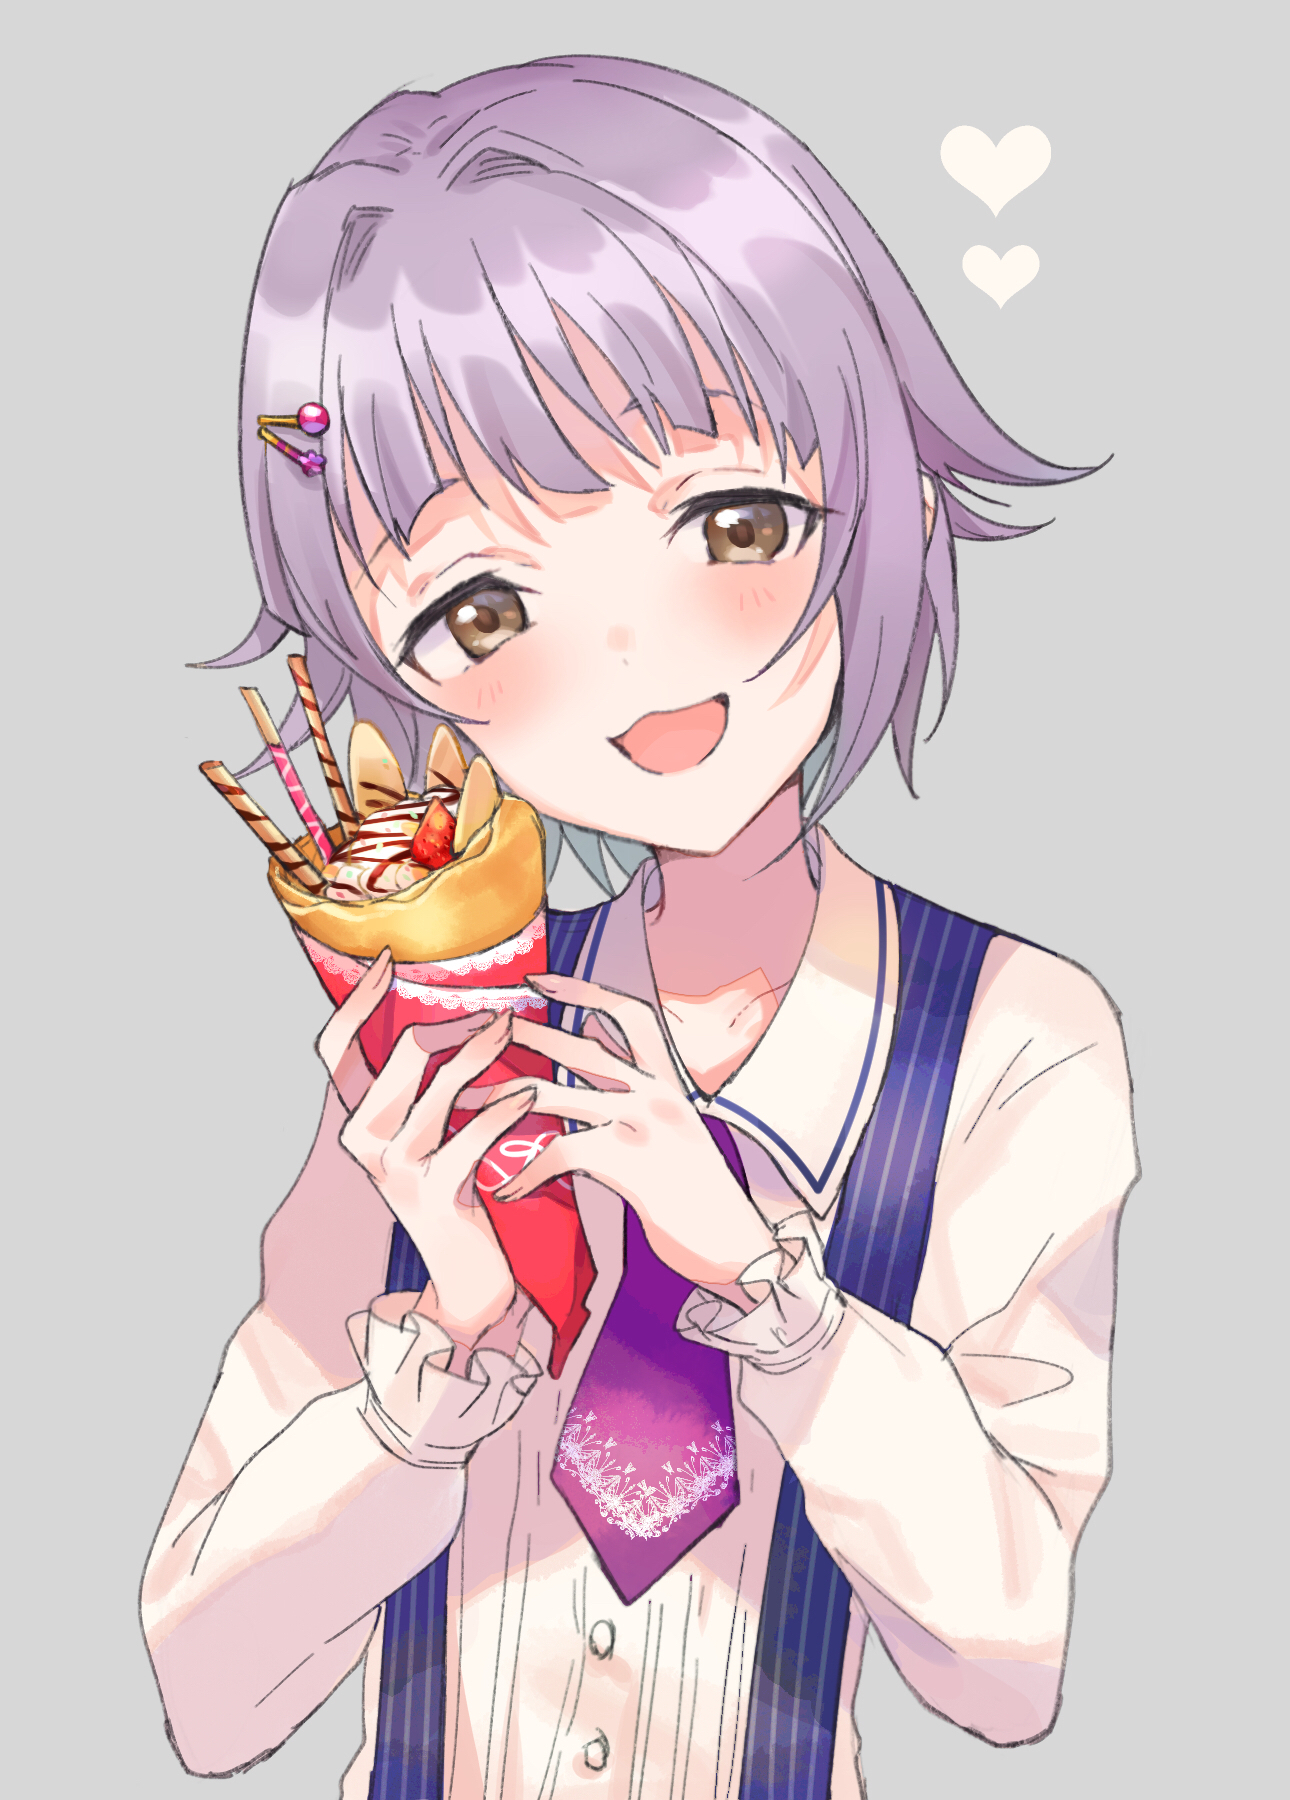 Crepe [Idolmaster] in 2020 Anime, Anime art, Manga anime